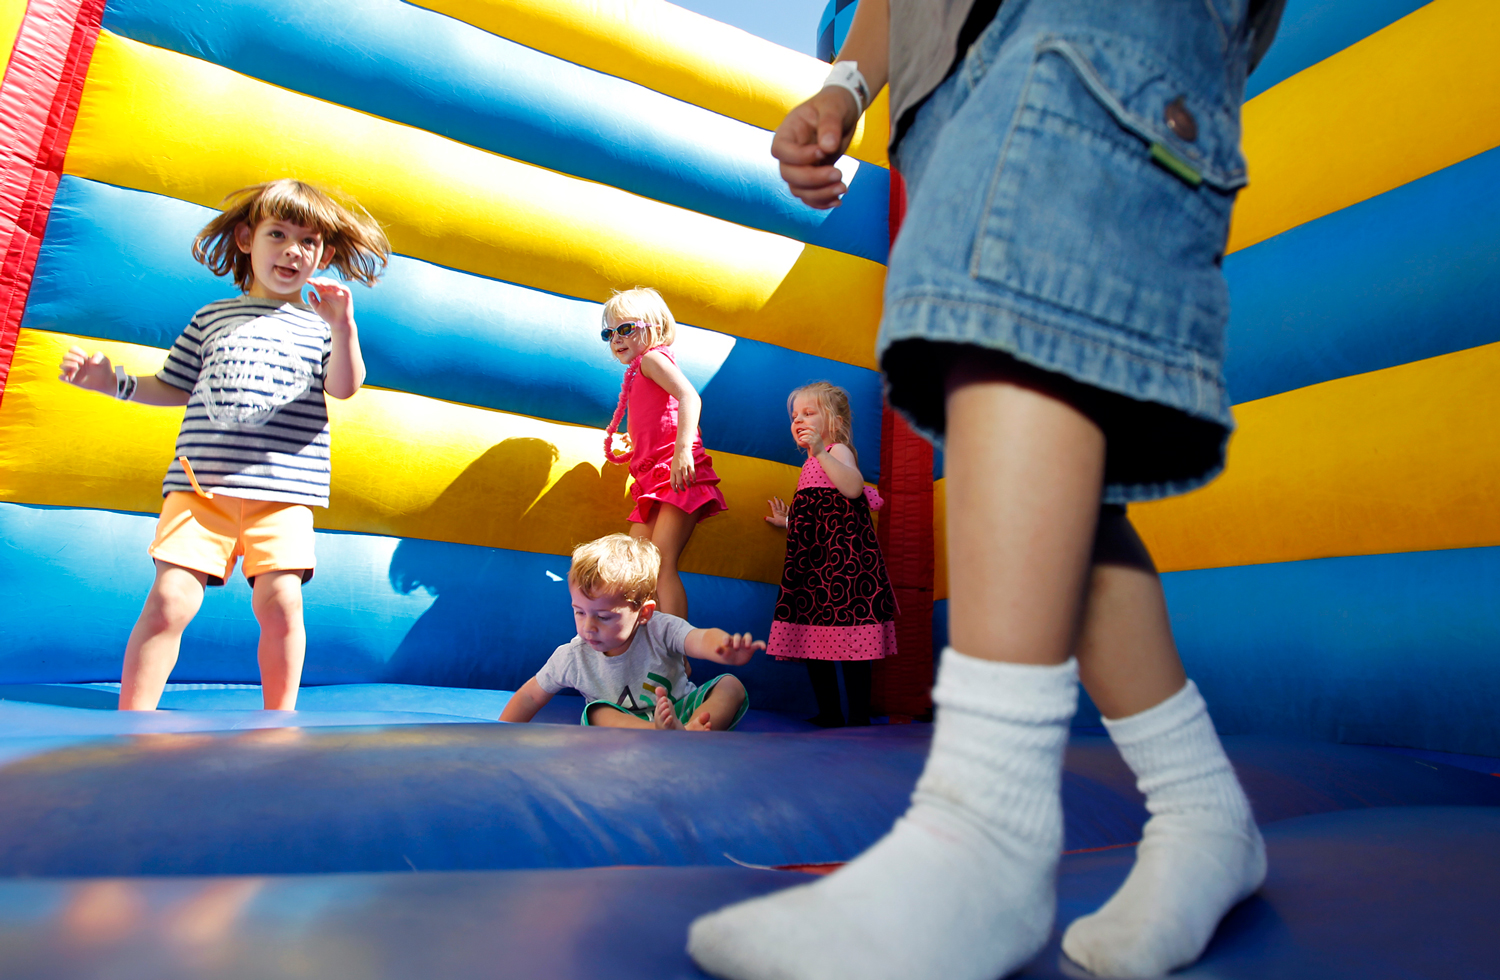 bounce-house-family-fest-carnival-event-photographer-madison-wi-ruthie-hauge-photography.jpg